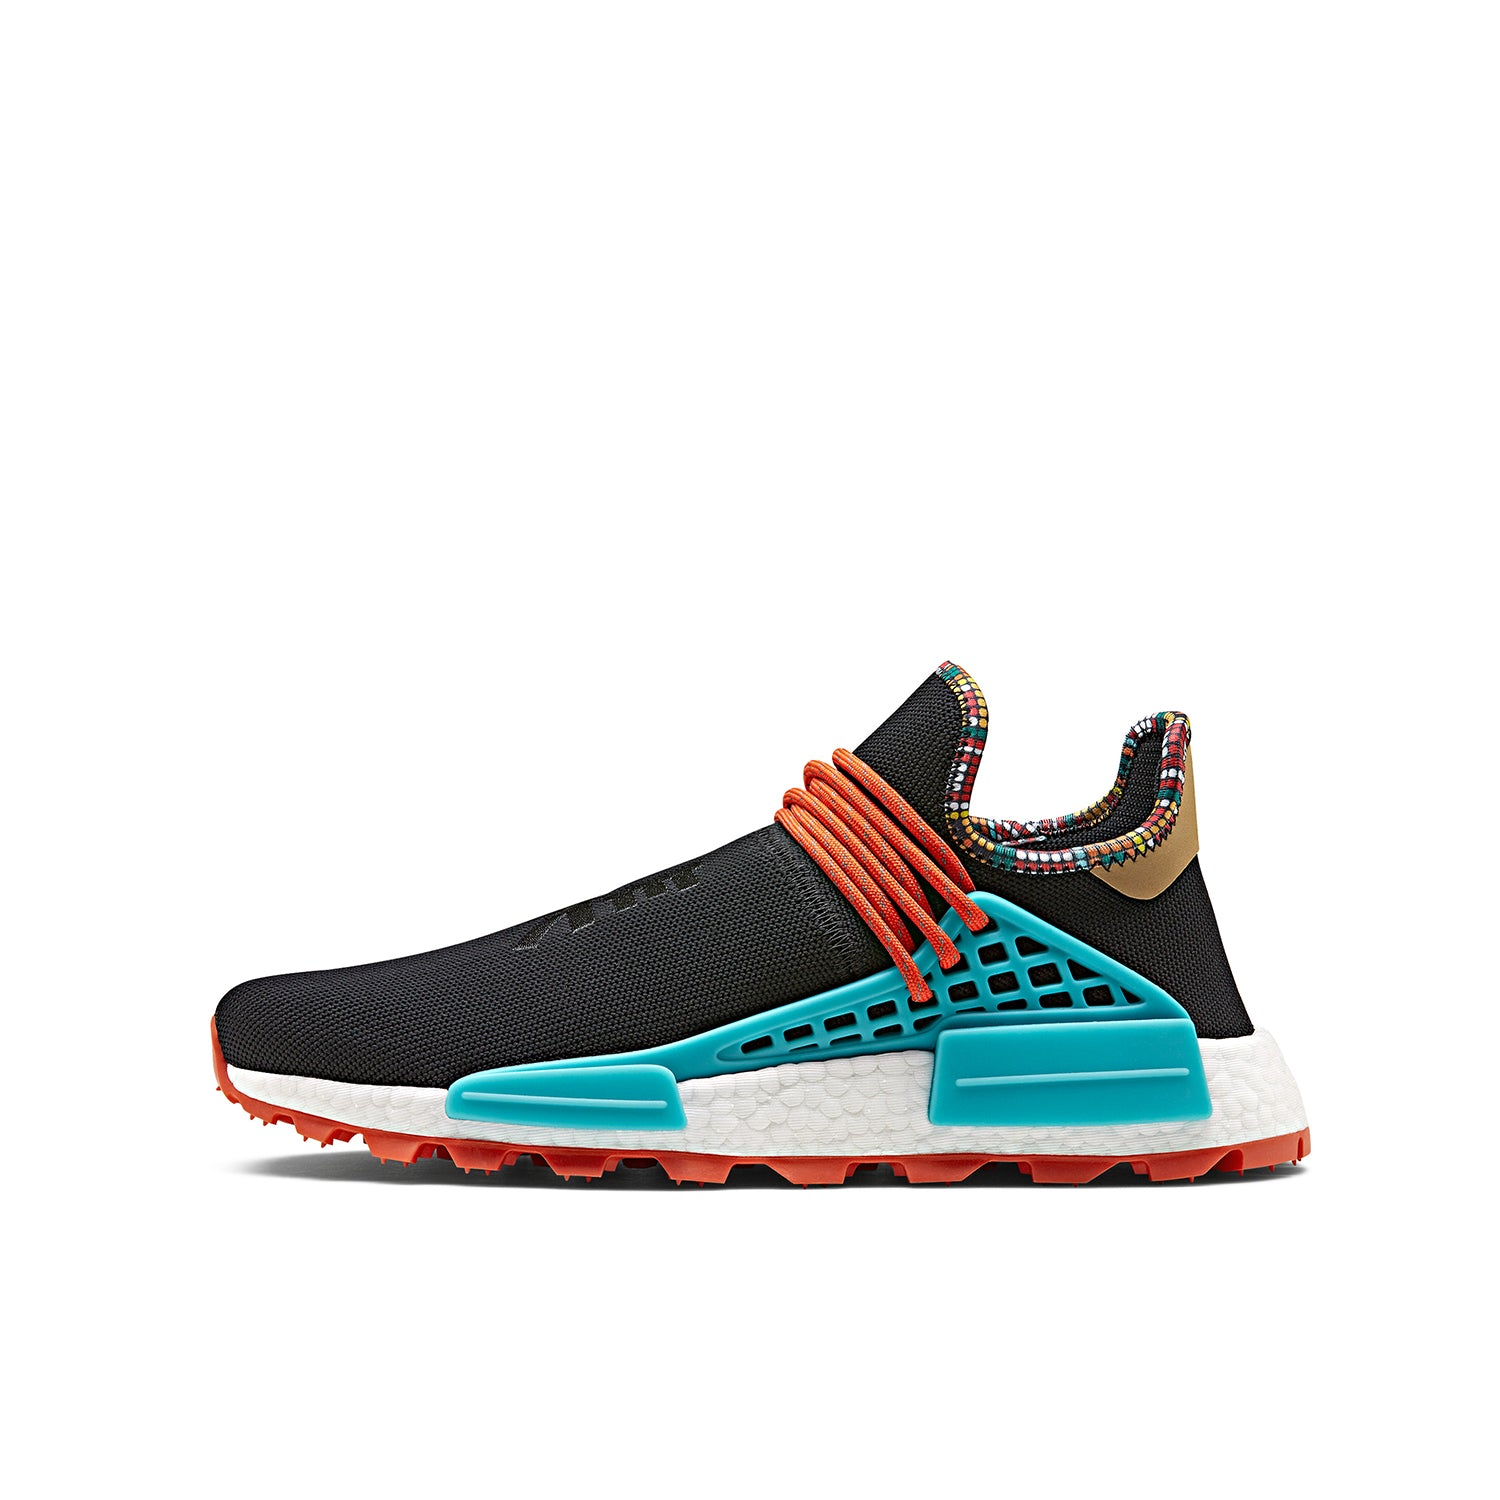 974222e62 adidas Originals x Pharrell Williams  INSPIRATION  Solar HU NMD Core Black.  Tap to expand